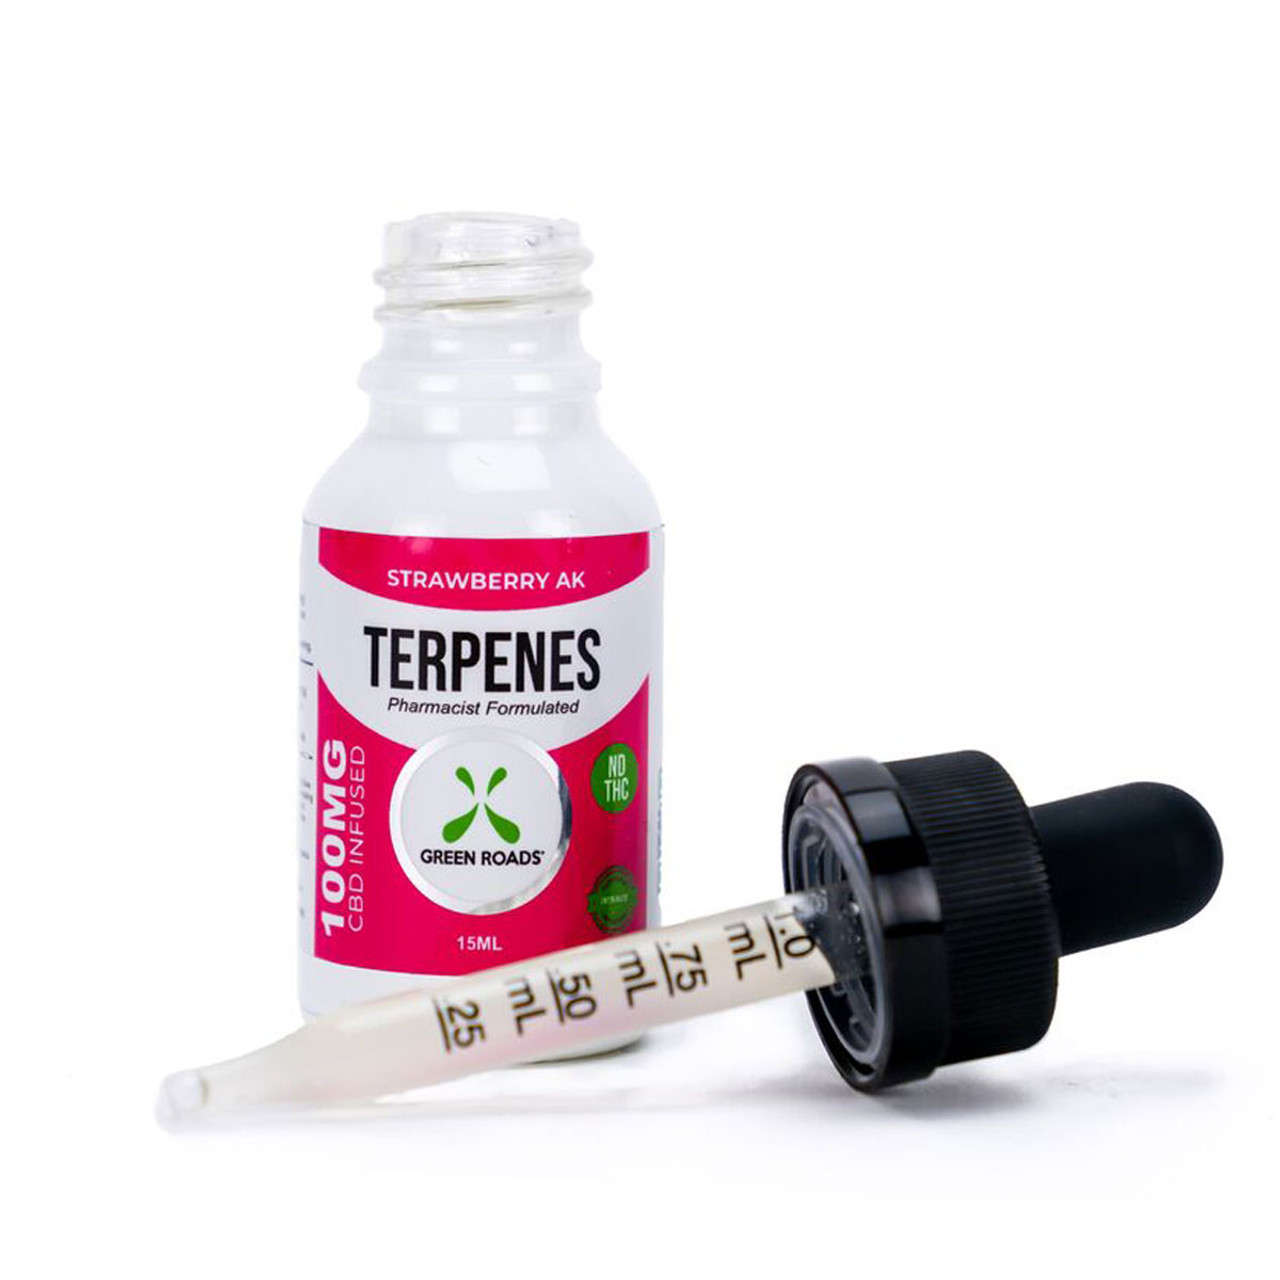 By infusing our all-natural CBD with terpenes also found in the hemp plant, we take advantage of the entourage effect, creating synergy between plant and human.